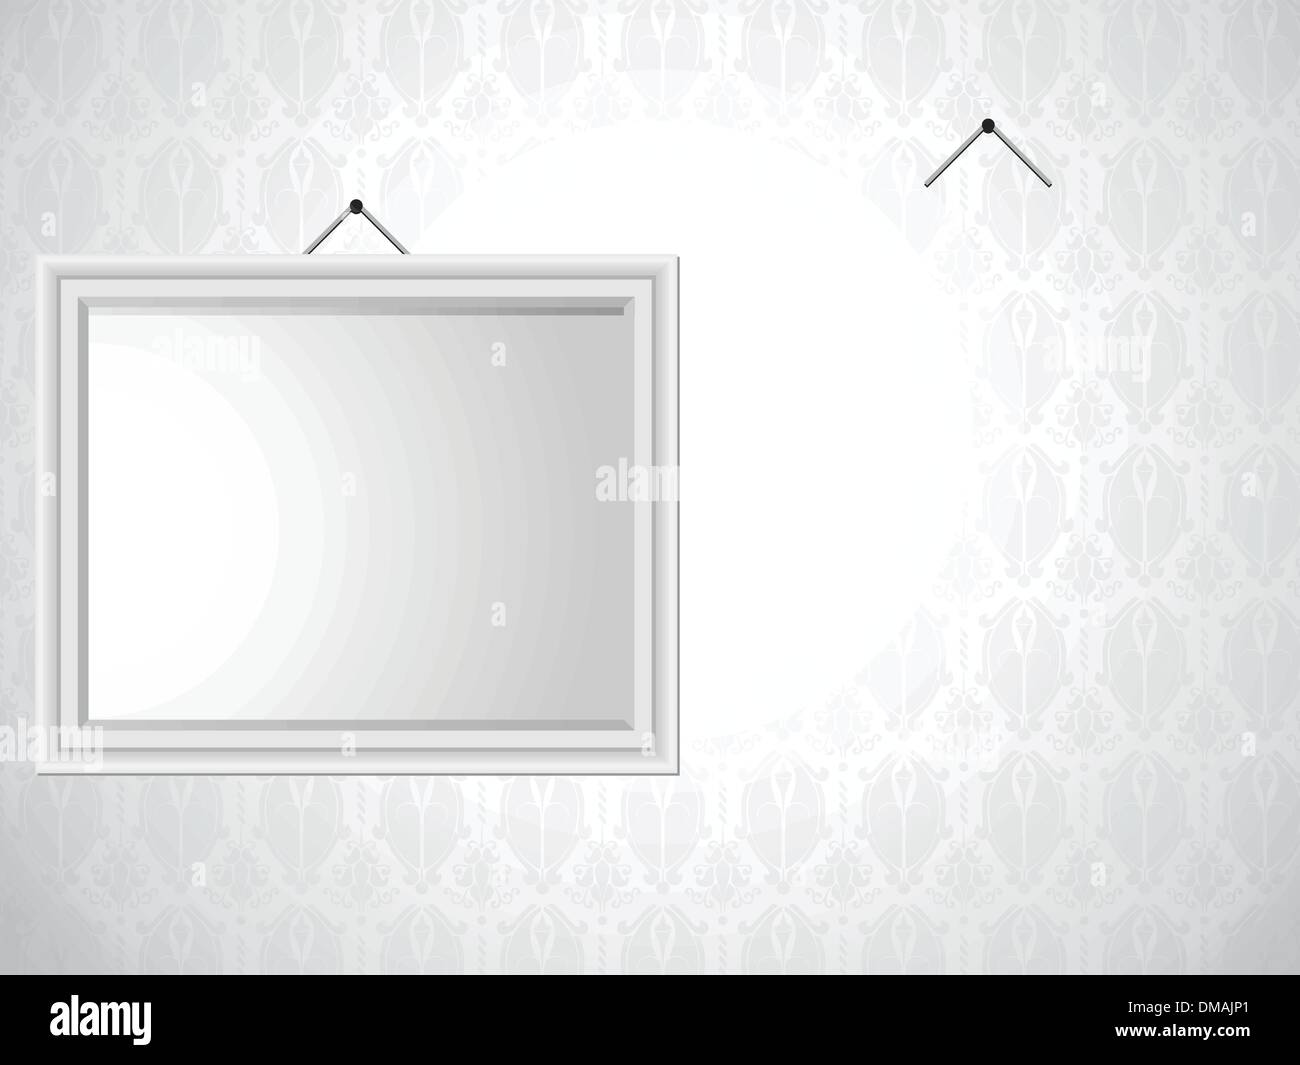 White Picture Frames on Wallpaper Background - Stock Vector